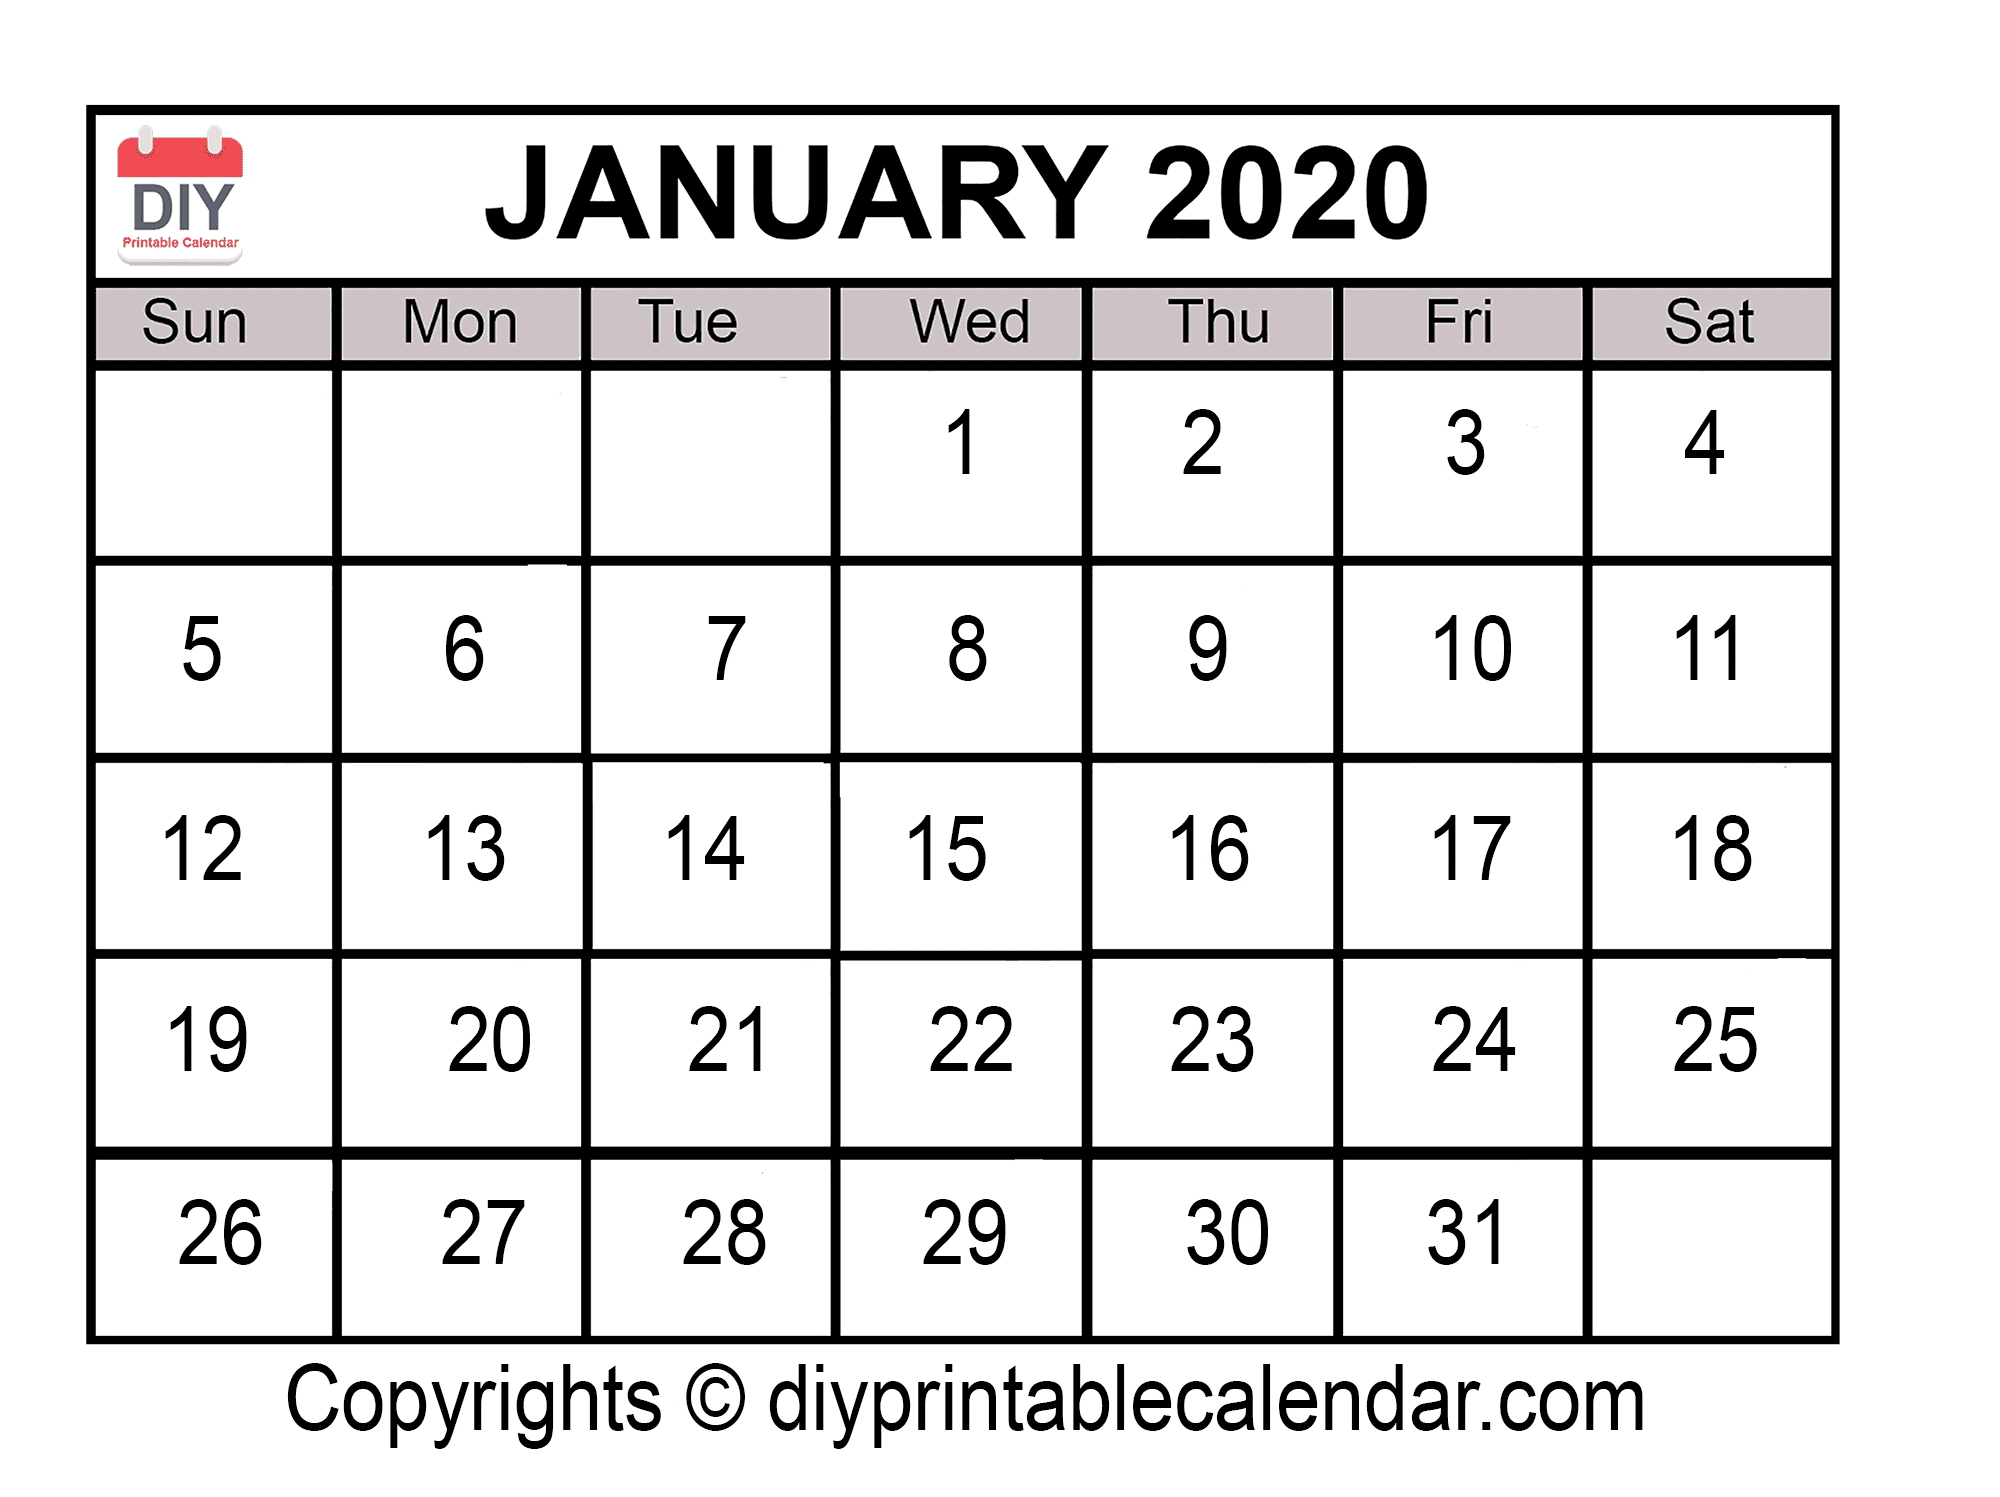 photograph regarding January Calendar Printable titled January 2020 Printable Calendar Template